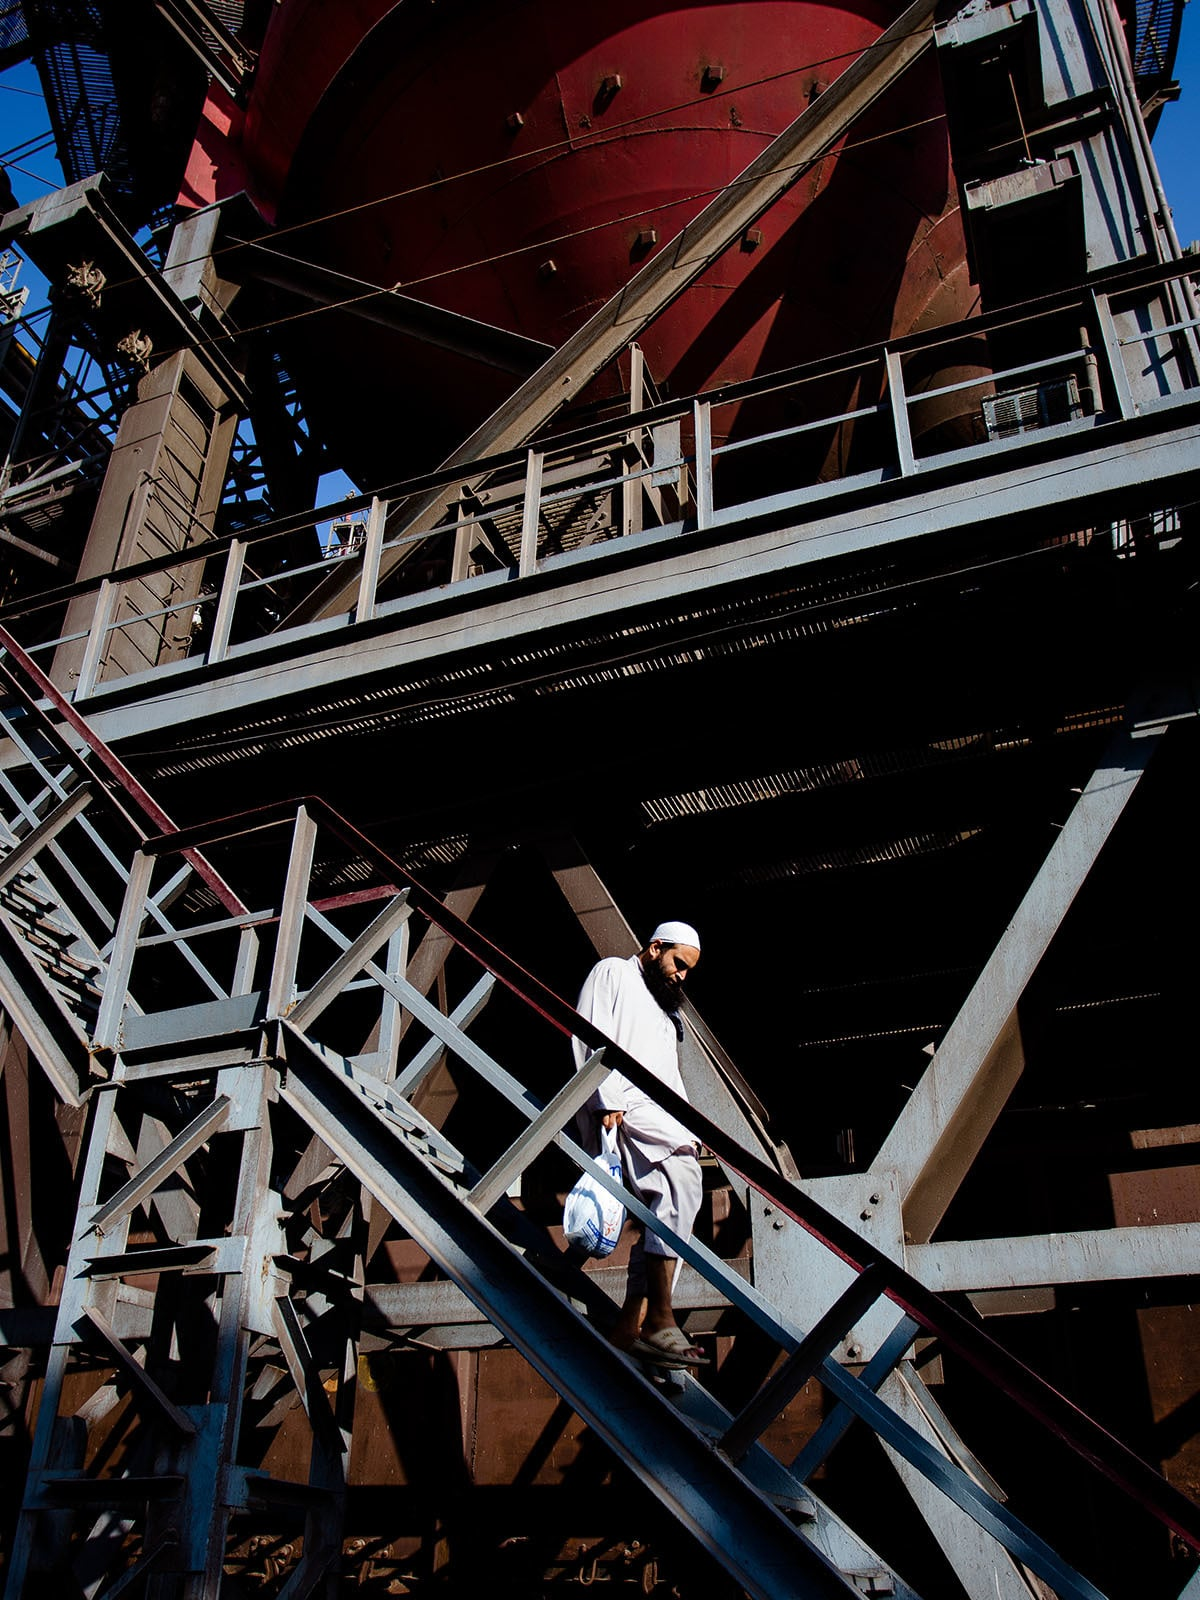 A man makes his way down from one of the blast furnaces at Pakistan Steel Mills